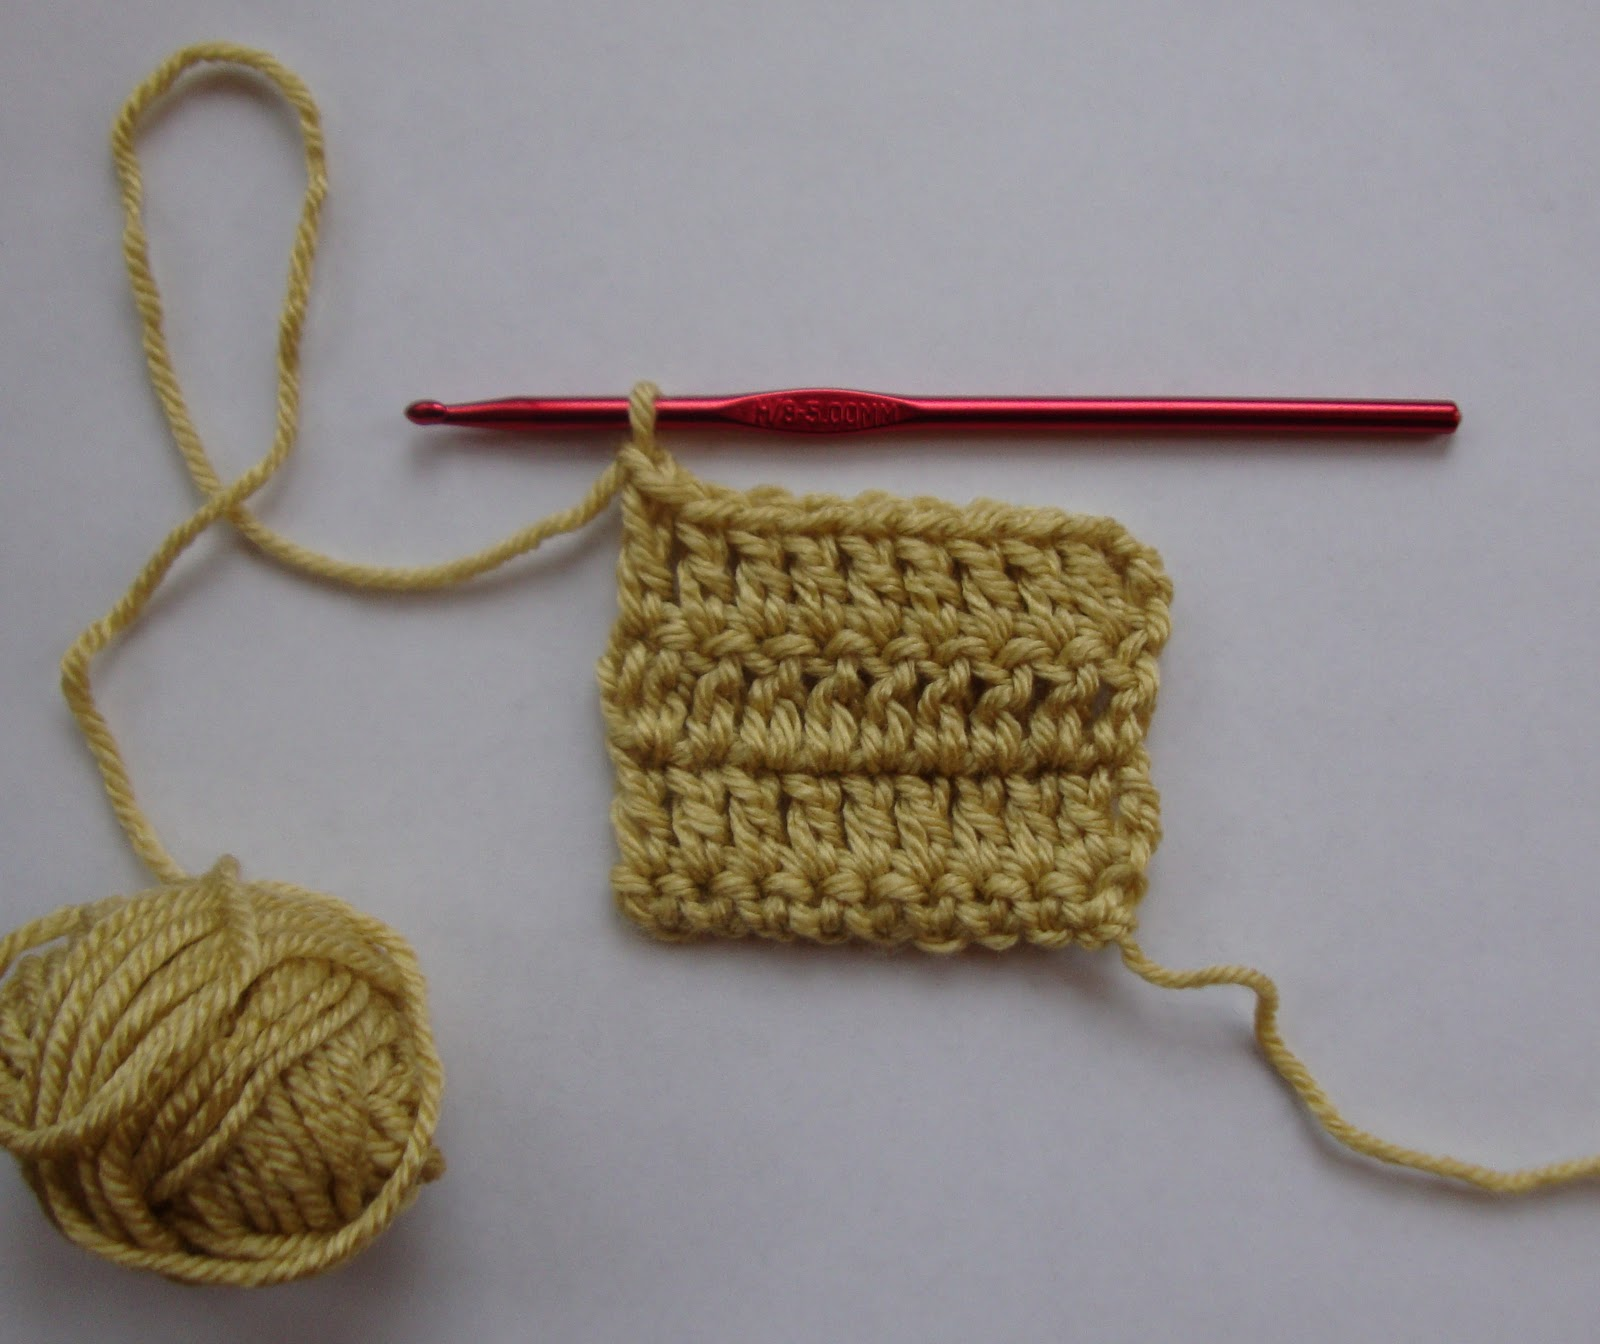 Crochet Stitches Reverse Sc : row or round of reverse single crochet rev sc rsc